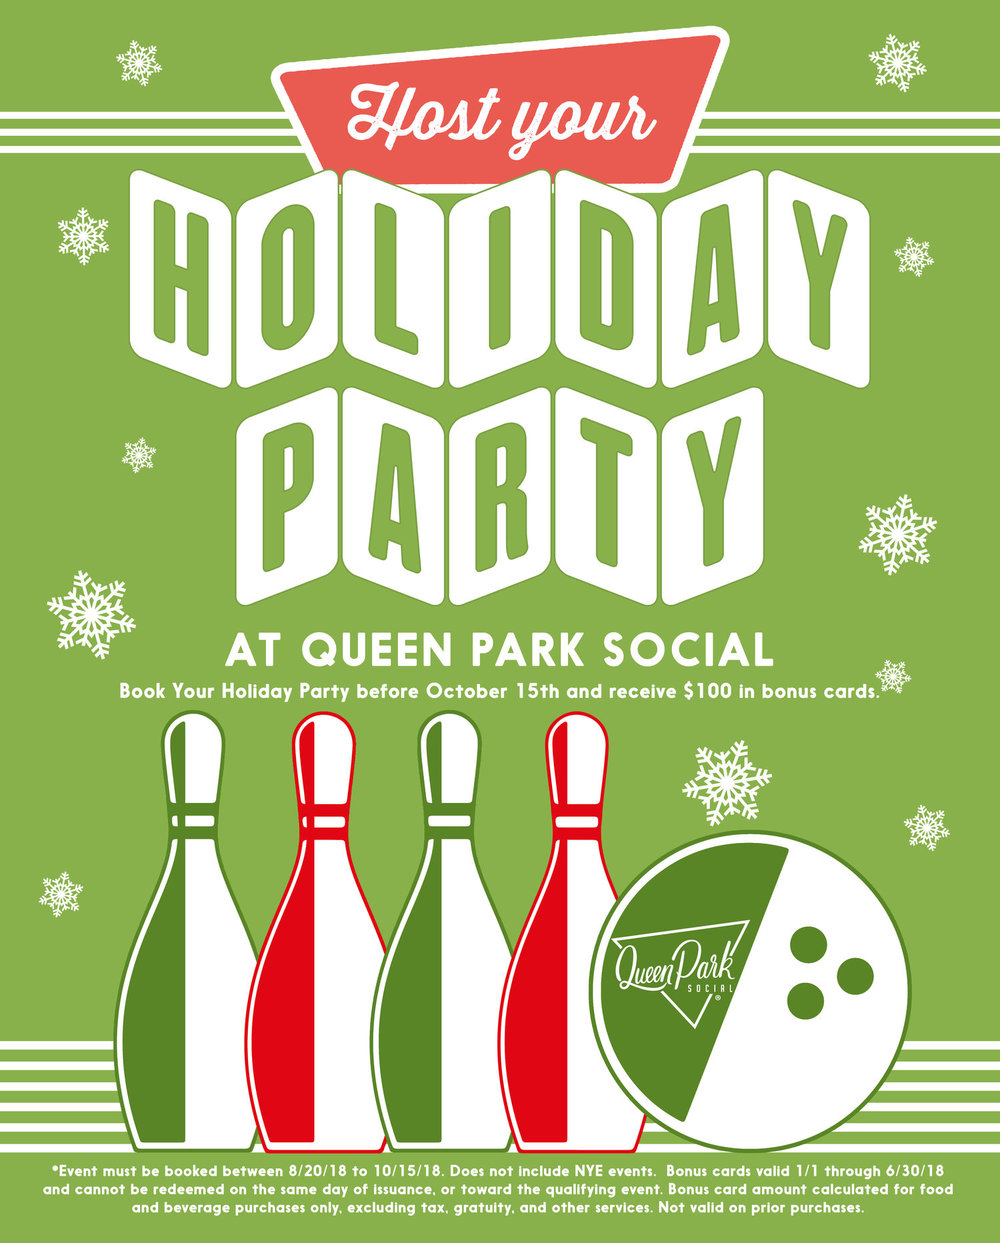 HOST YOUR HOLIDAY PARTY